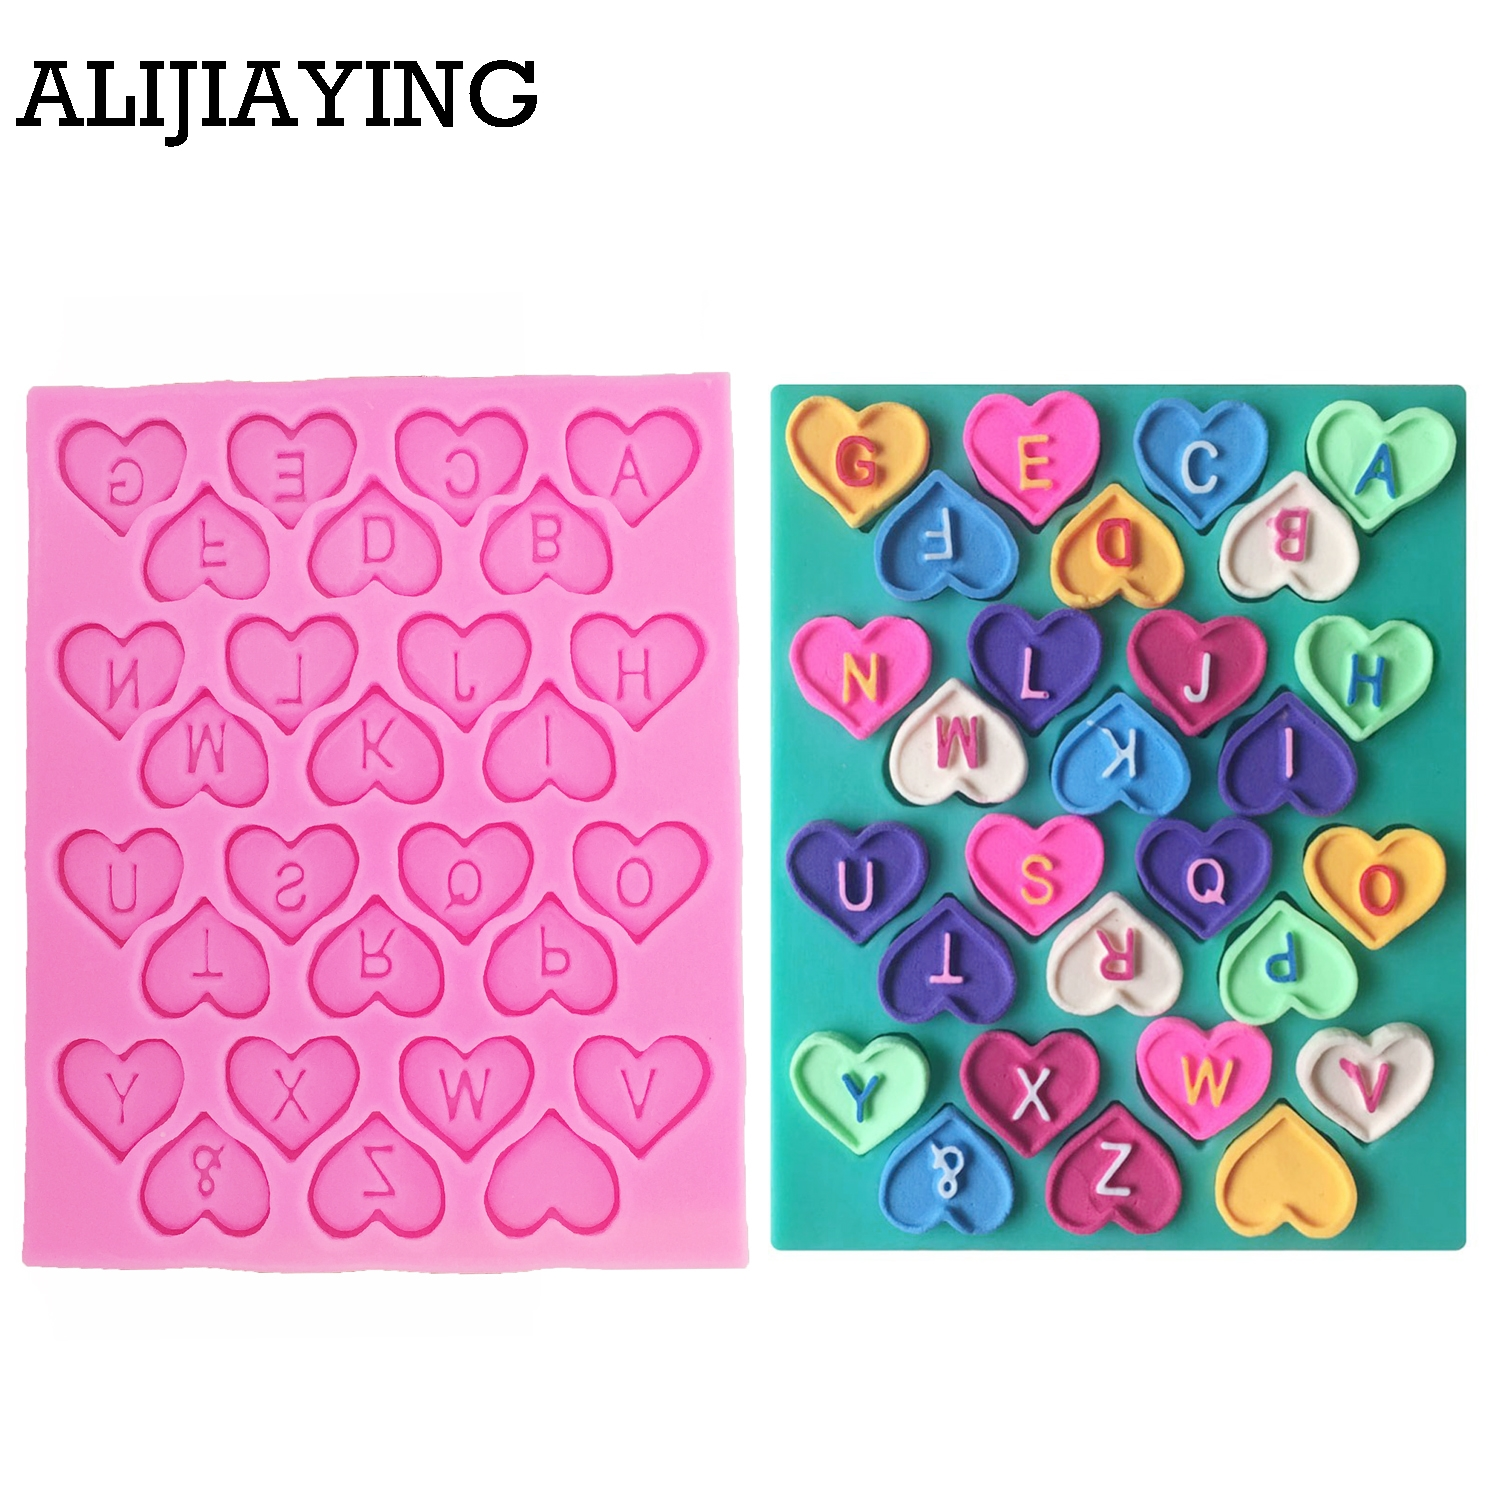 M0198 DIY <font><b>Cake</b></font> <font><b>Decorating</b></font> Love Heart <font><b>Letter</b></font> Lace Shaped Fondant Silicone <font><b>Cake</b></font> Molding Sugar Art <font><b>Tools</b></font> image